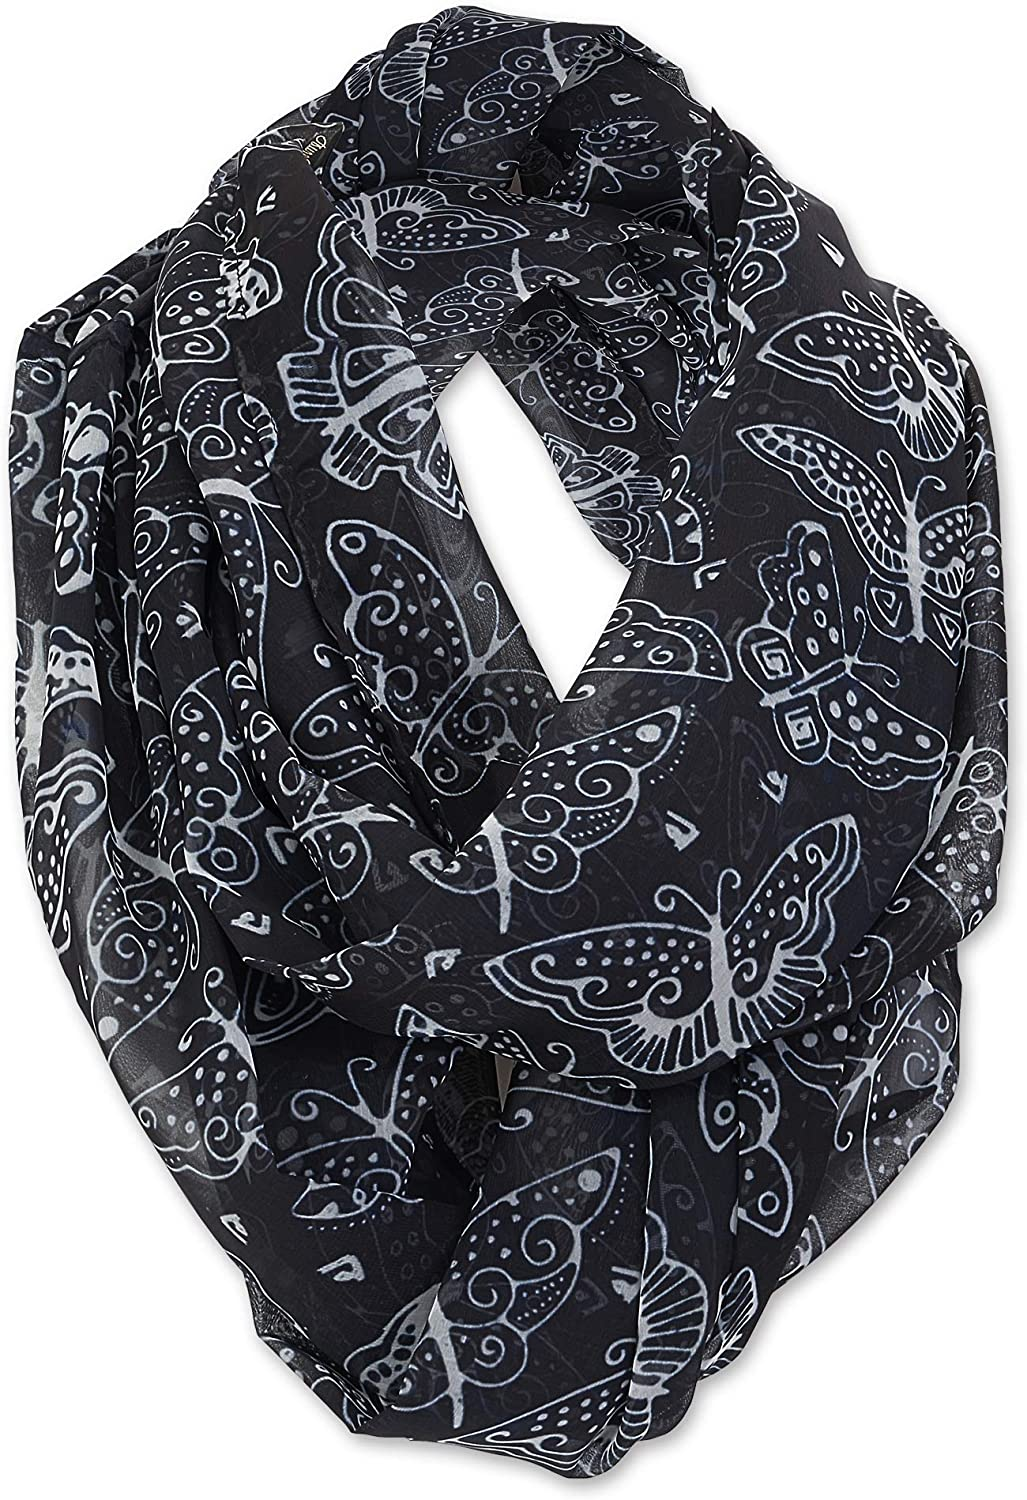 Laurel Burch Artistic Infinity Scarf Collection